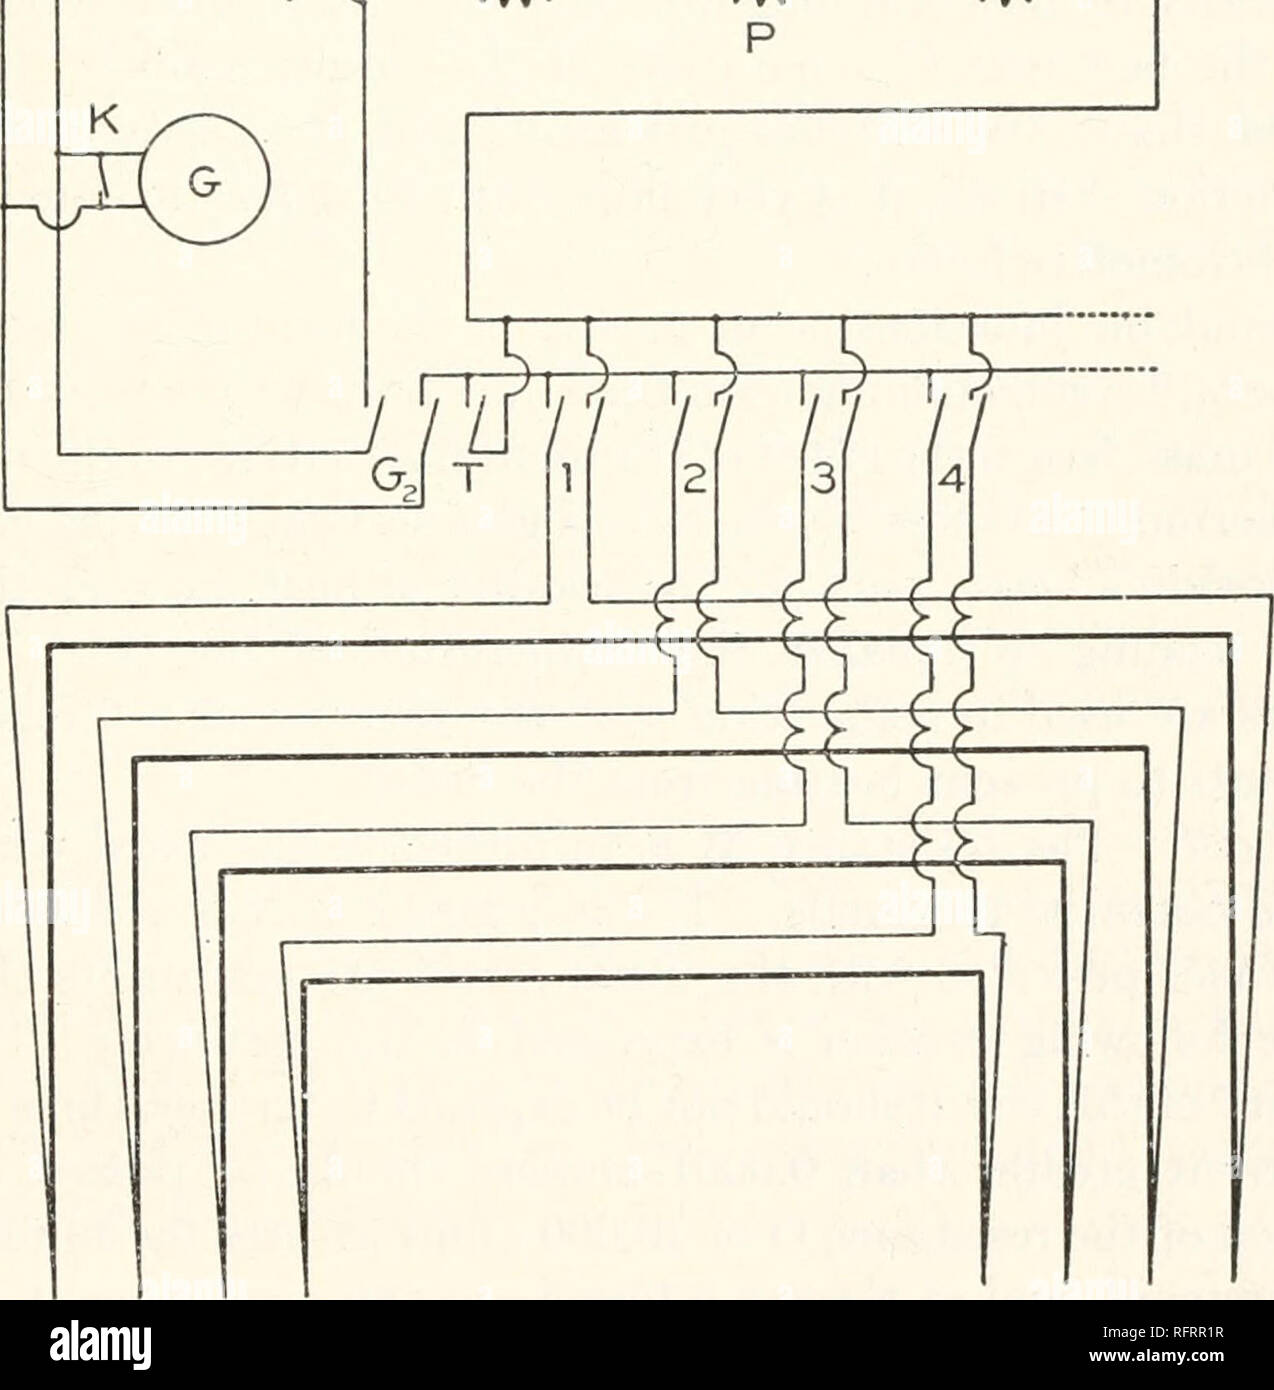 hight resolution of  carnegie institution of washington publication vwwwvwwv r vwwwvw aaa ks 7 h s f s ri k f k body oven fig 2 complete wiring diagram of